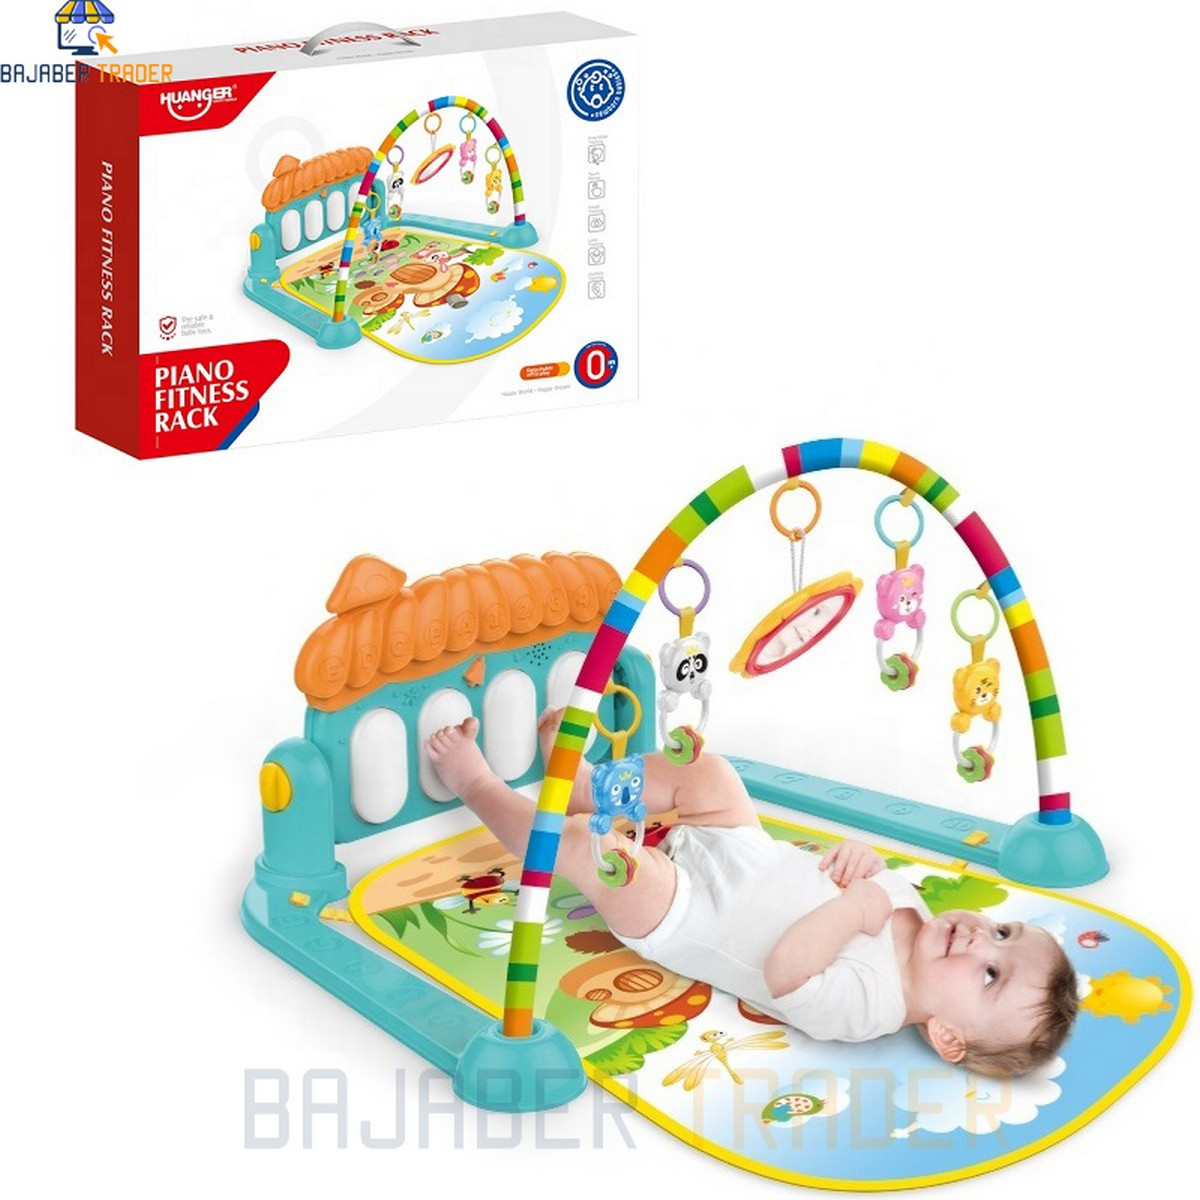 Huanger - 3 In 1 Newborn Baby Toddler Play Gym Piano Fitness Rack Mat